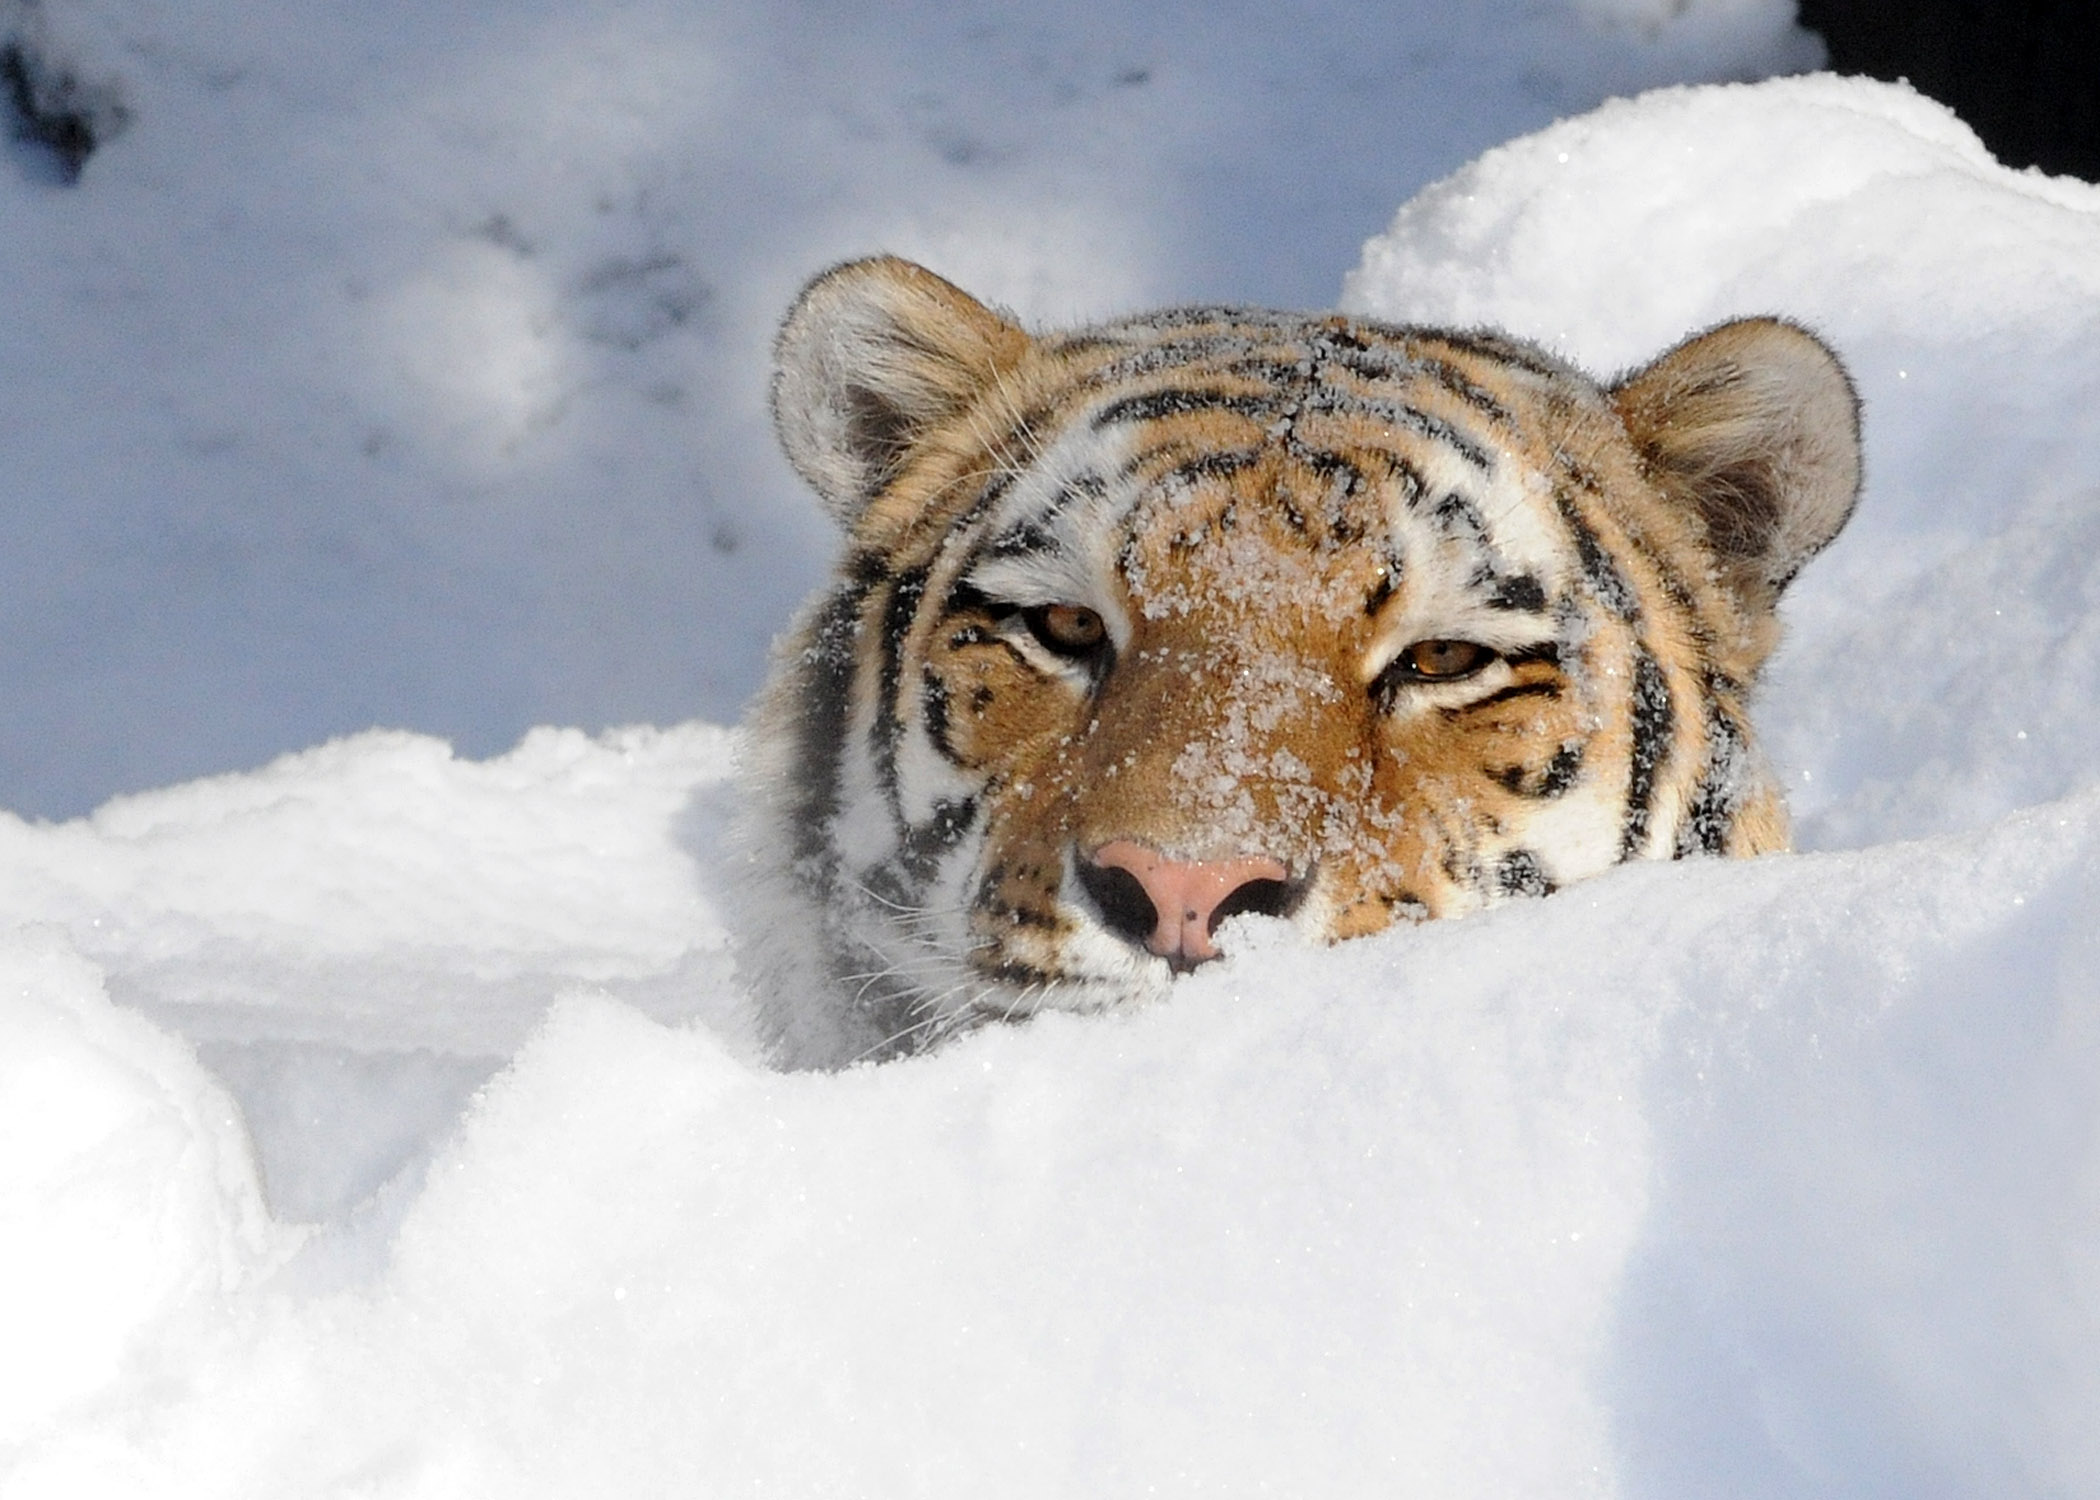 Bison In Snow Bison Wolf And Tiger Play In Snow